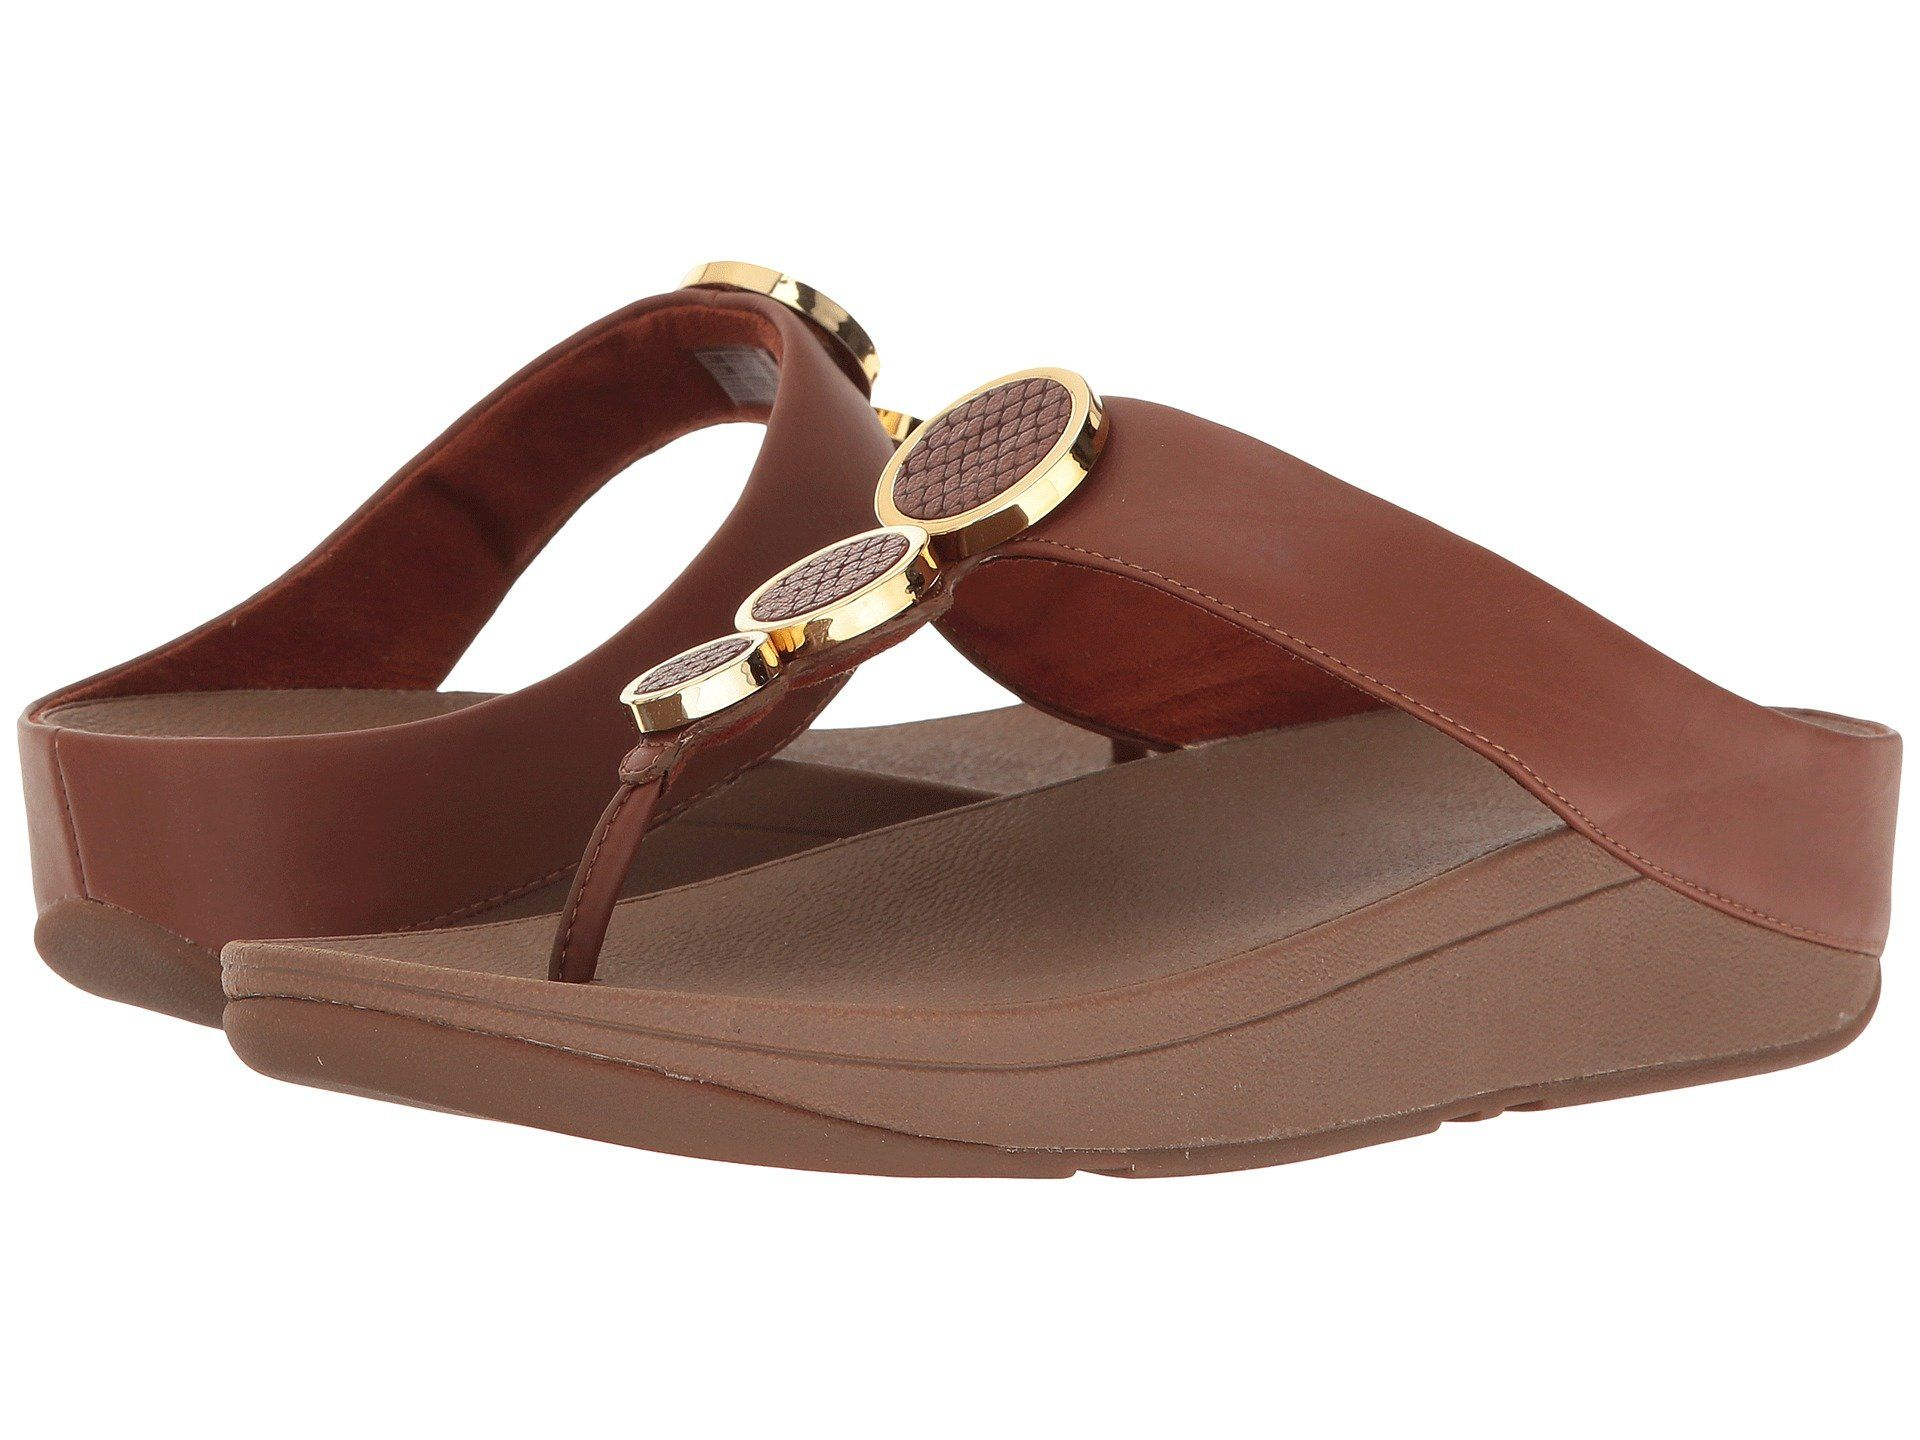 638e37b0f1f FITFLOP Halo Toe Thong Sandals.  fitflop  shoes